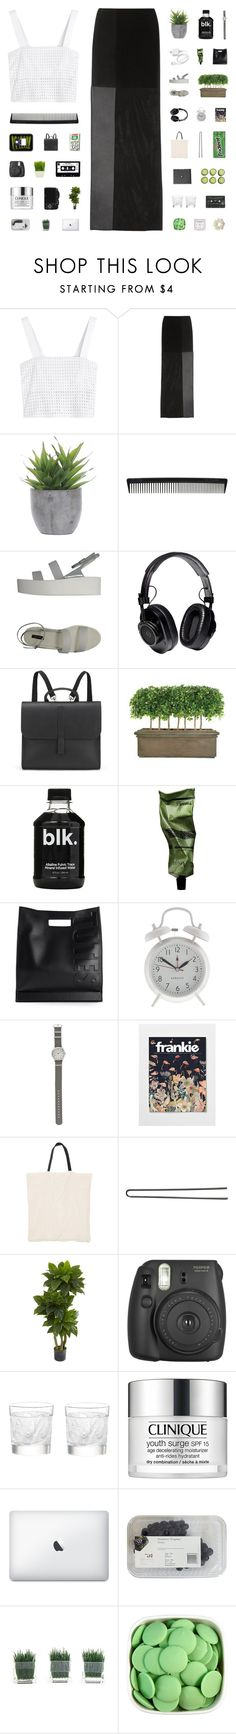 """""""Helicopter"""" by bosspresident ❤ liked on Polyvore featuring 3.1 Phillip Lim, Maison Margiela, Lux-Art Silks, T3, Calvin Klein Collection, Proenza Schouler, Danielle Foster, INC International Concepts, Aesop and J.Crew"""